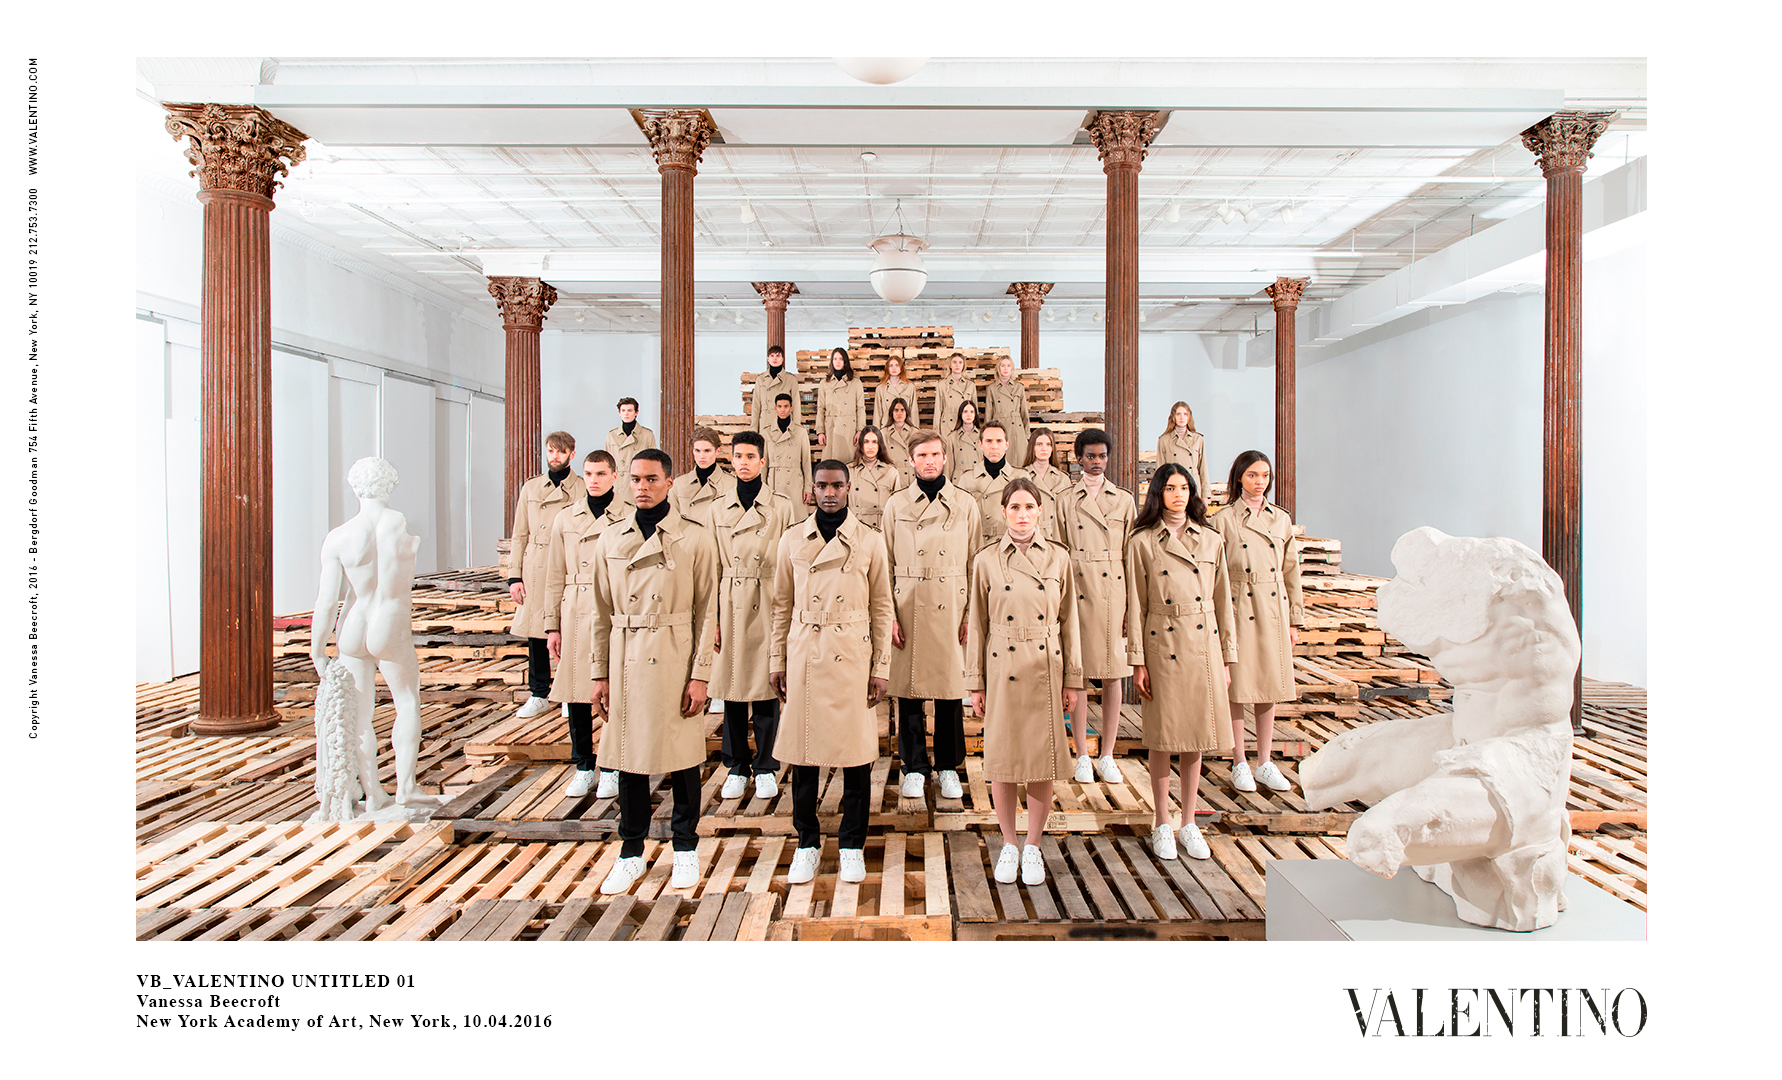 VB_VALENTINO UNTITLED 01 — Vanessa Beecroft — New York Academy of Art, New York, 10.04.2016   ©Valentino